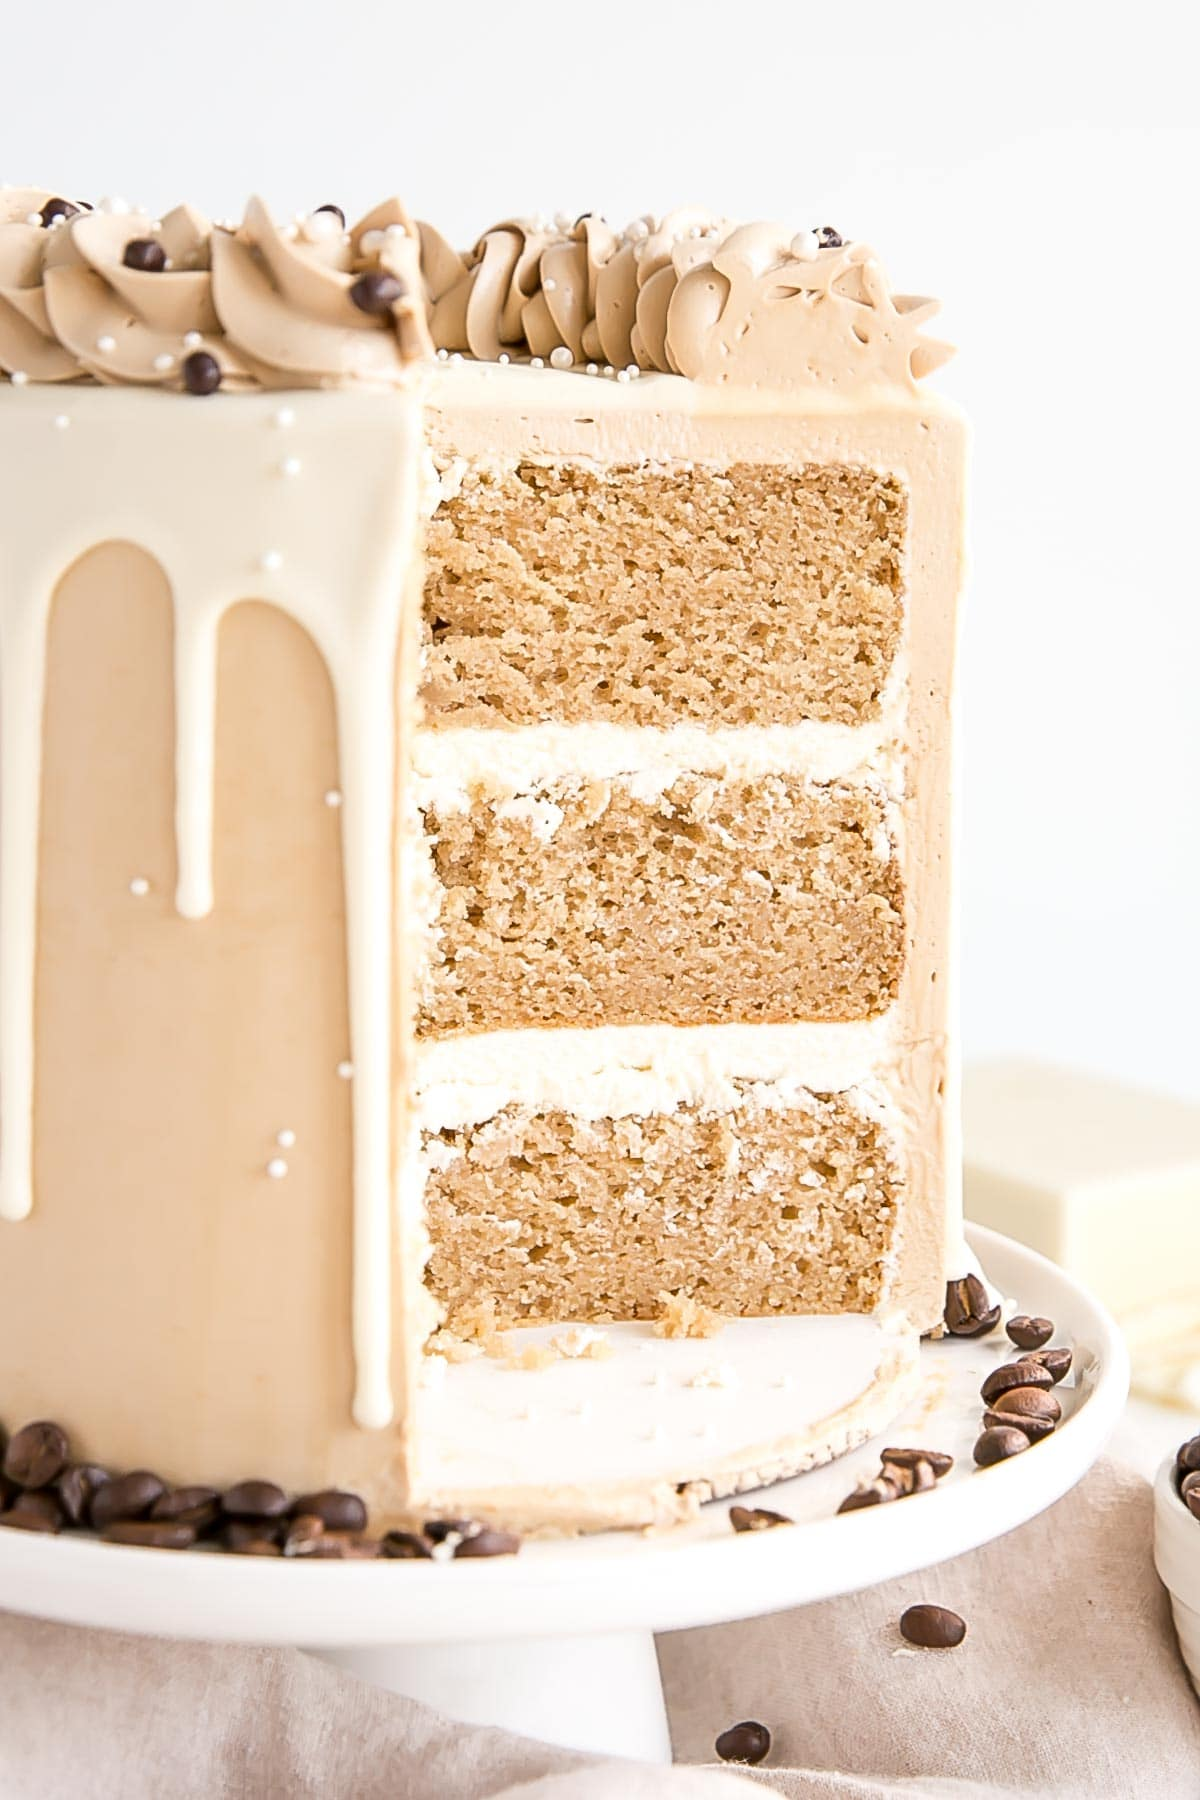 Cross section of the cake showing layers and white chocolate ganache filling.